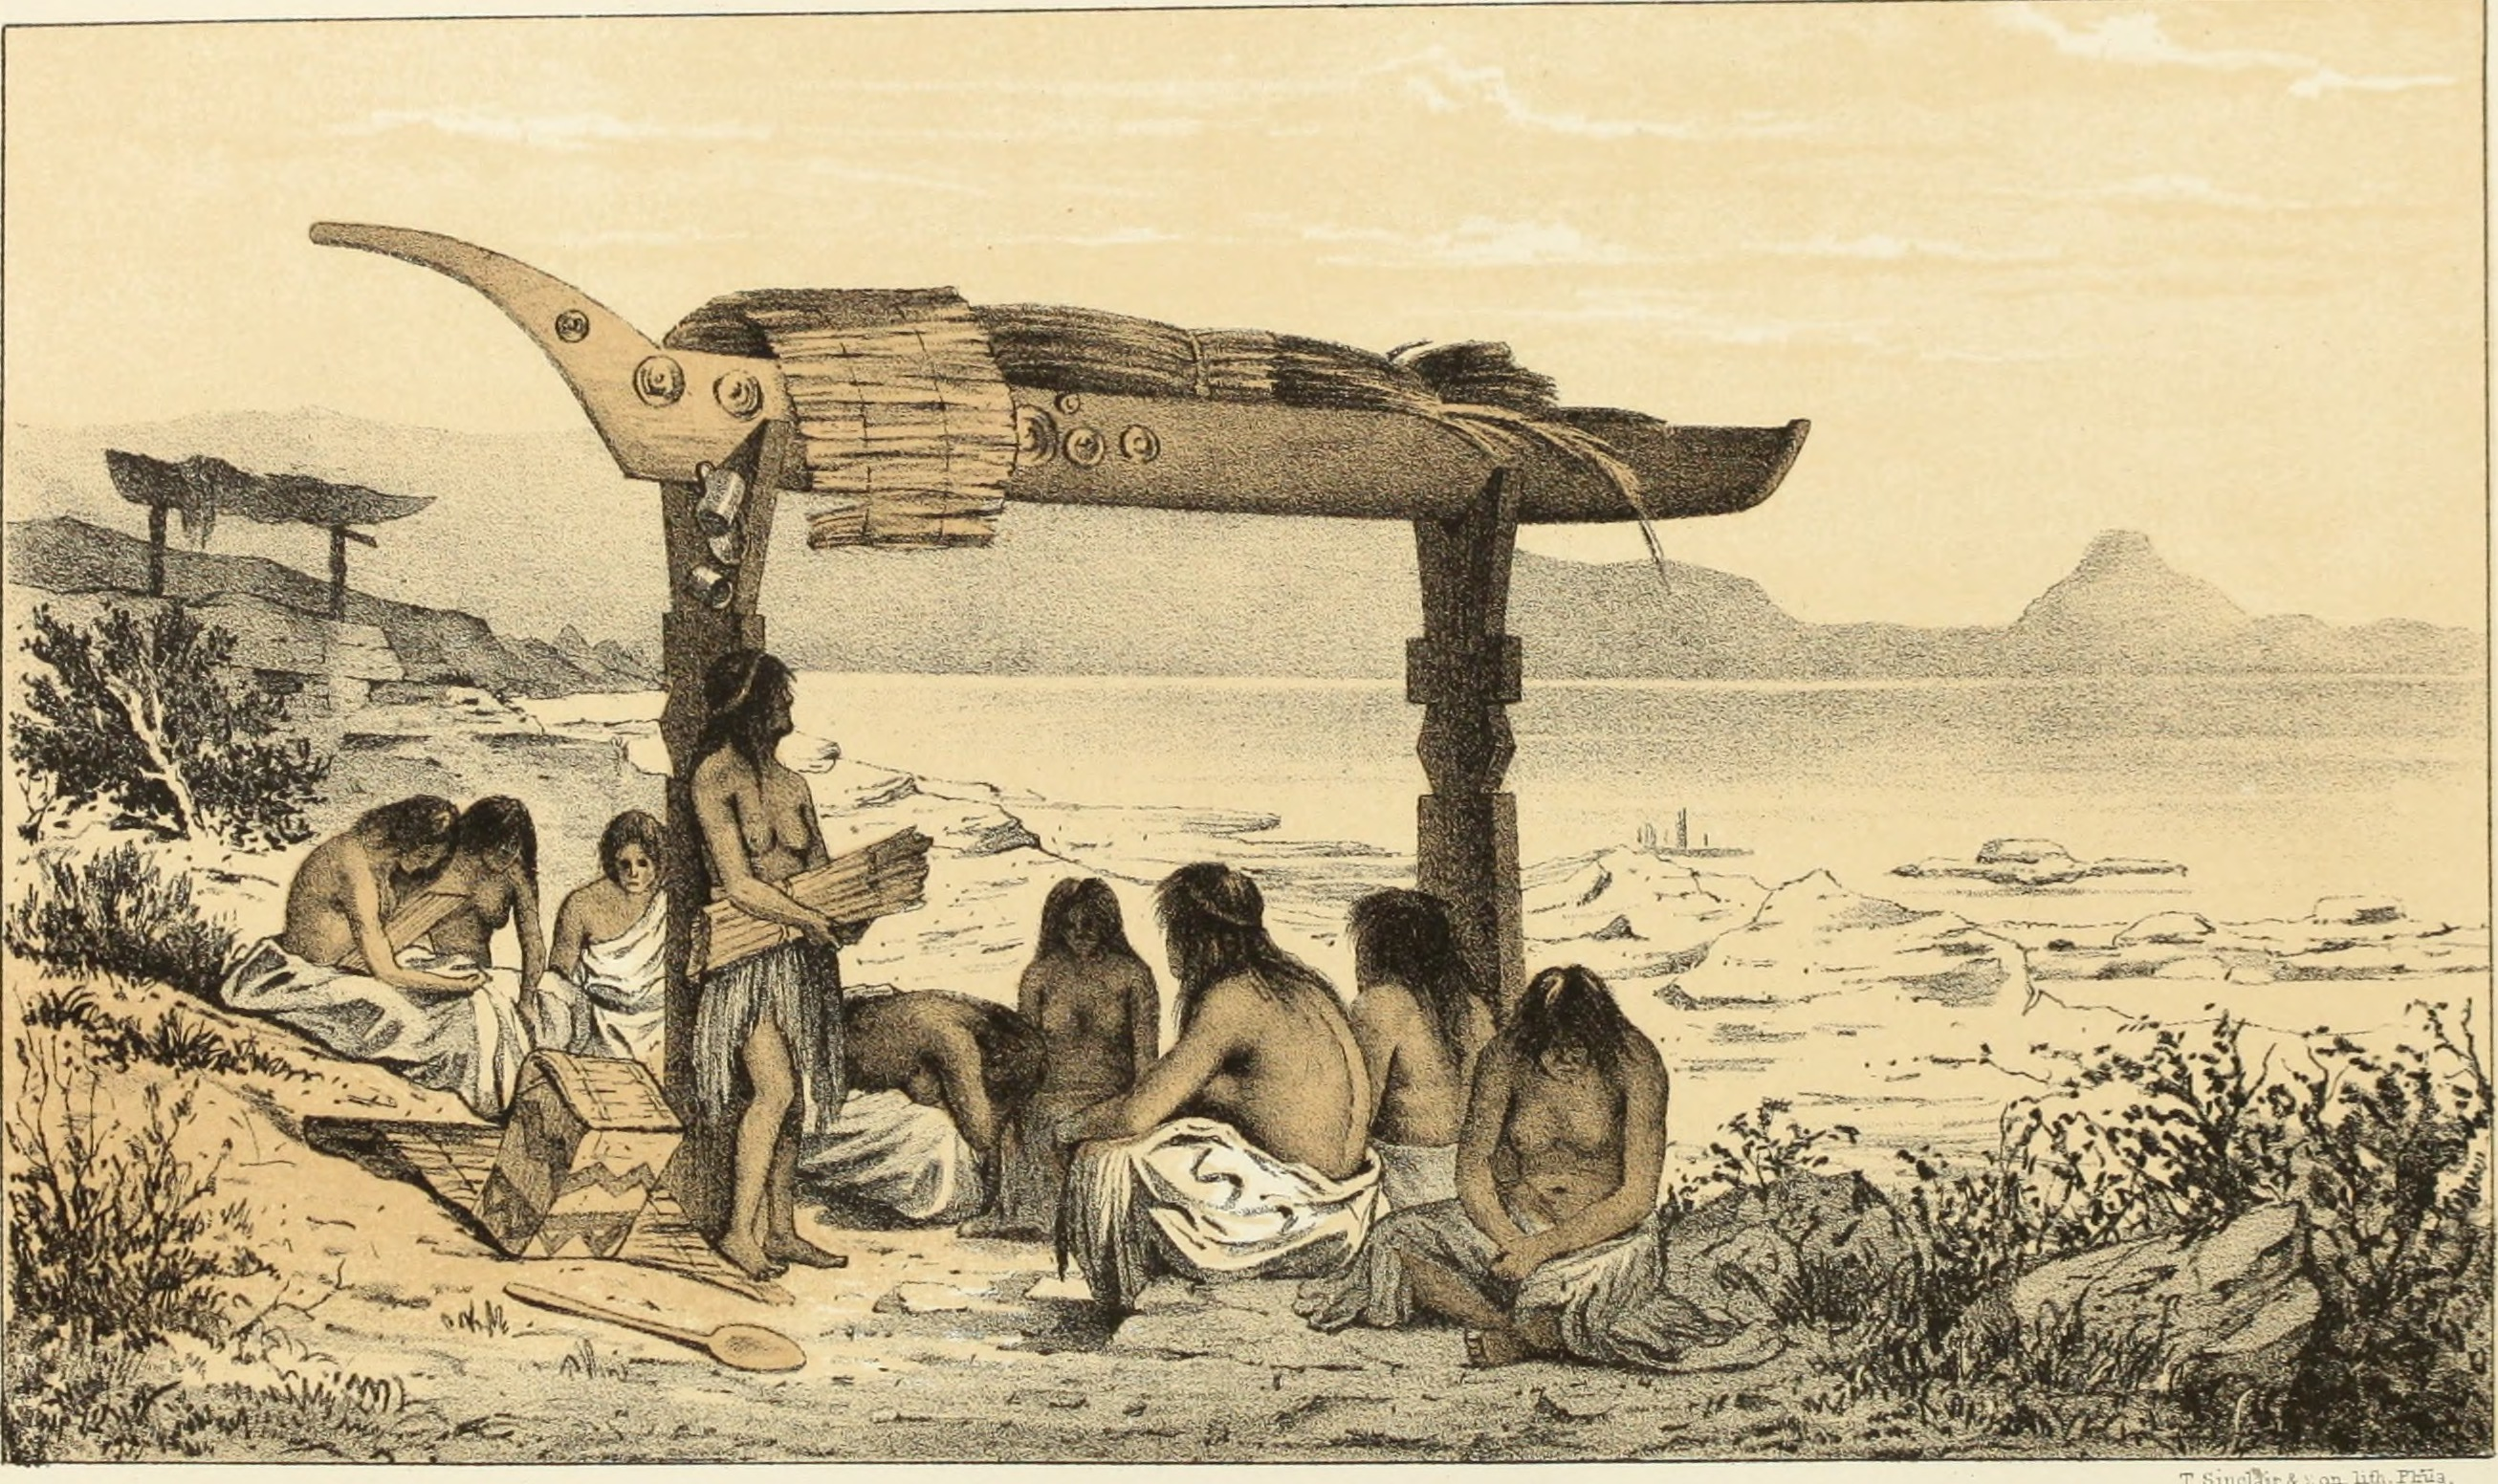 Datei:annual report of the bureau of ethnology to the secretary of